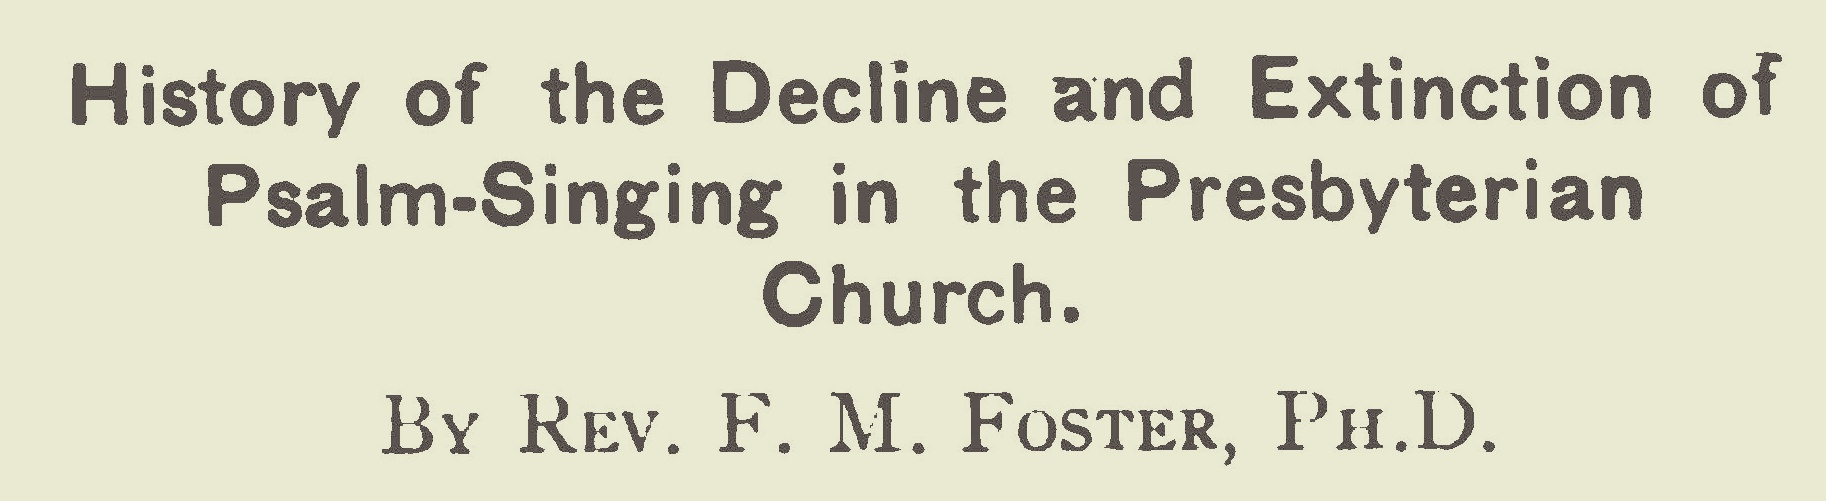 Foster, Finley Milligan, History of the Decline and Extinction of Psalm-Singing Title Page.jpg